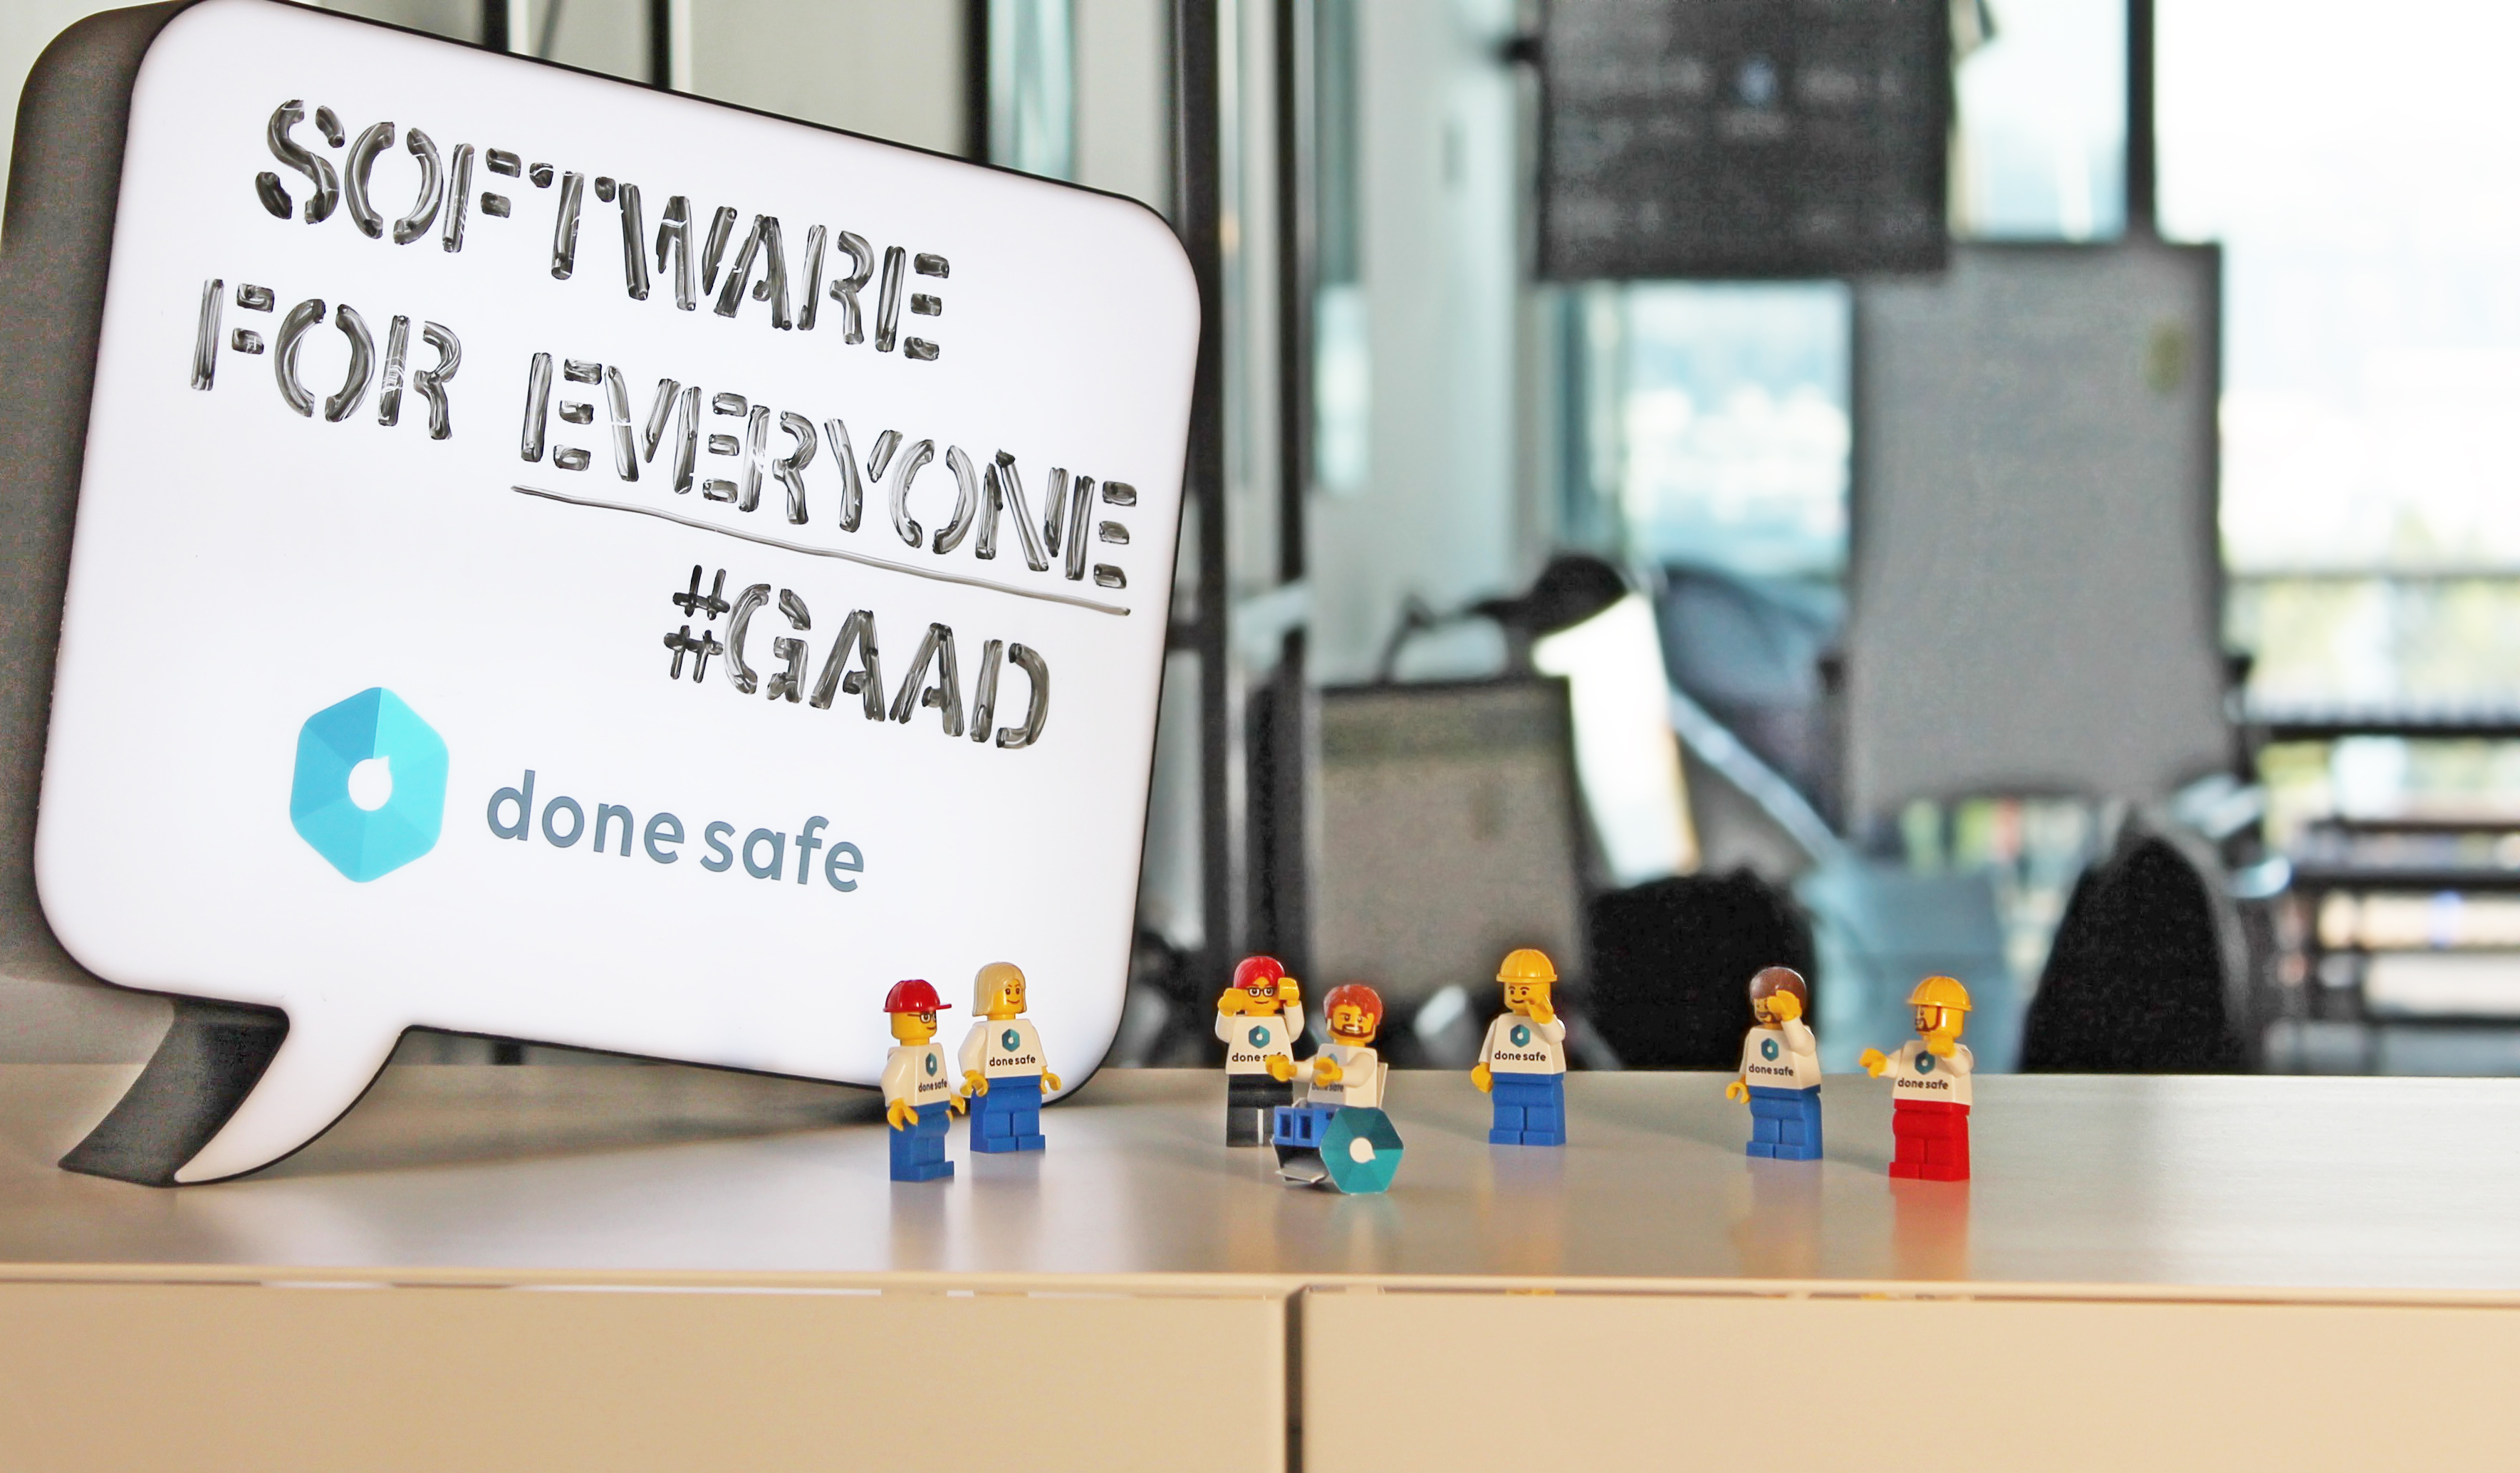 Software for everyone, Donesafe